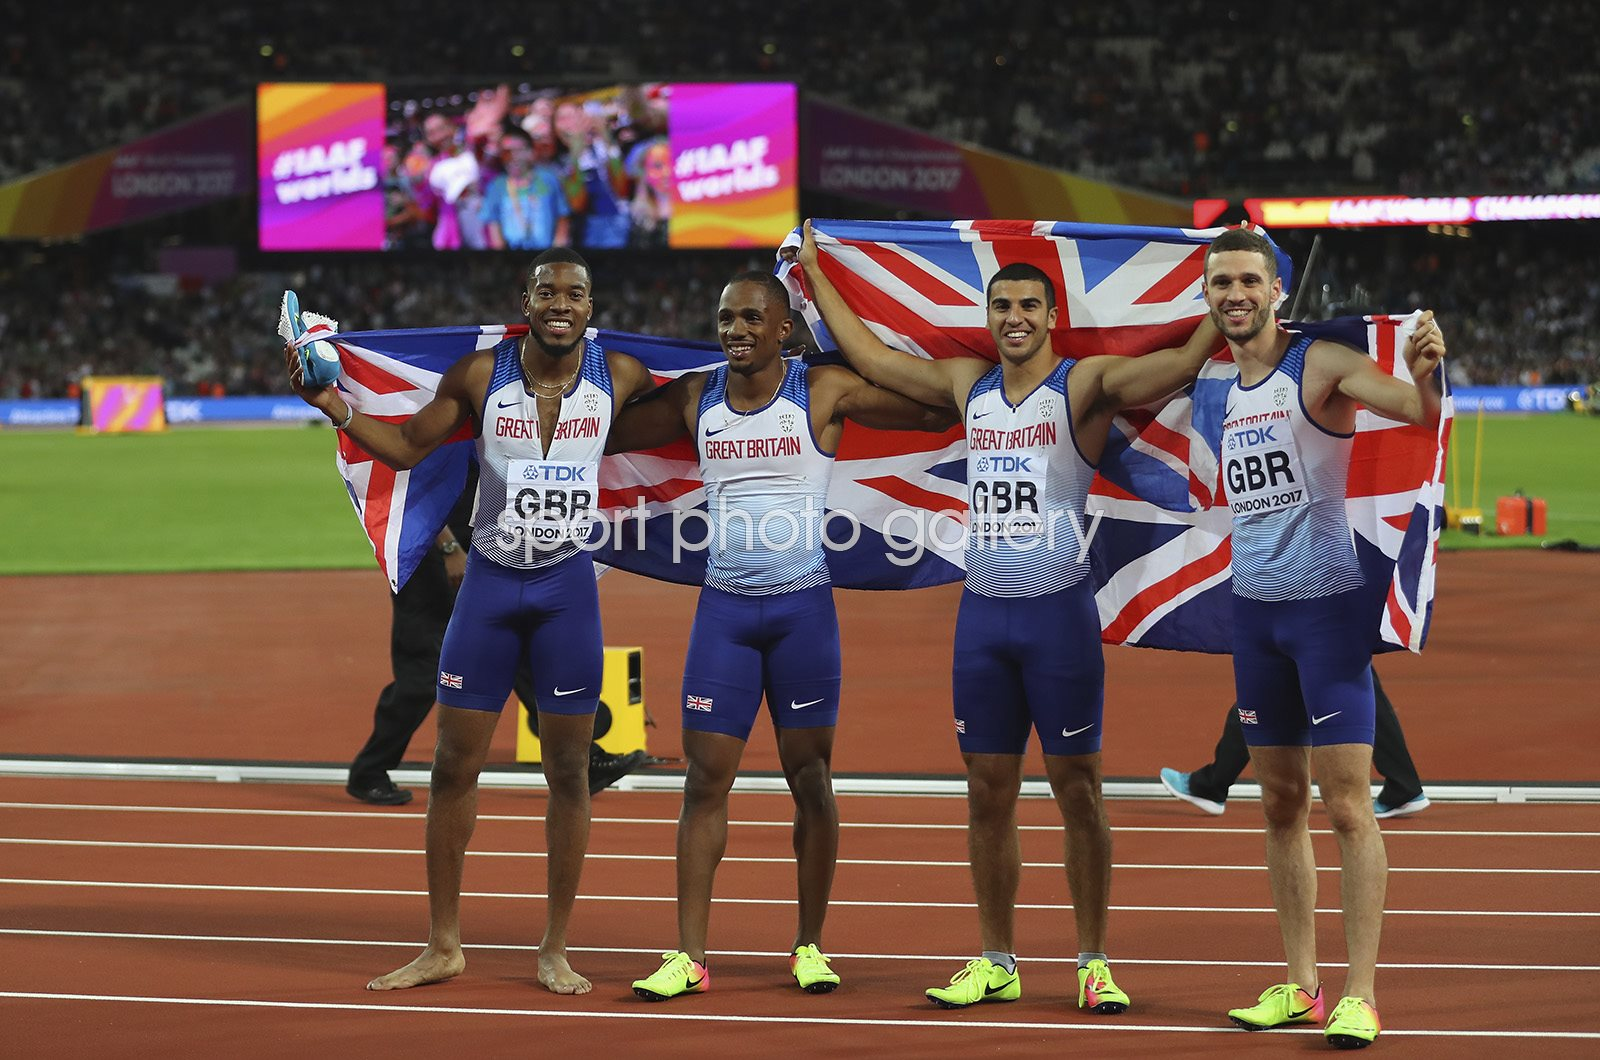 Great Britain Men's 4x100m Relay Gold World Athletics London 2017